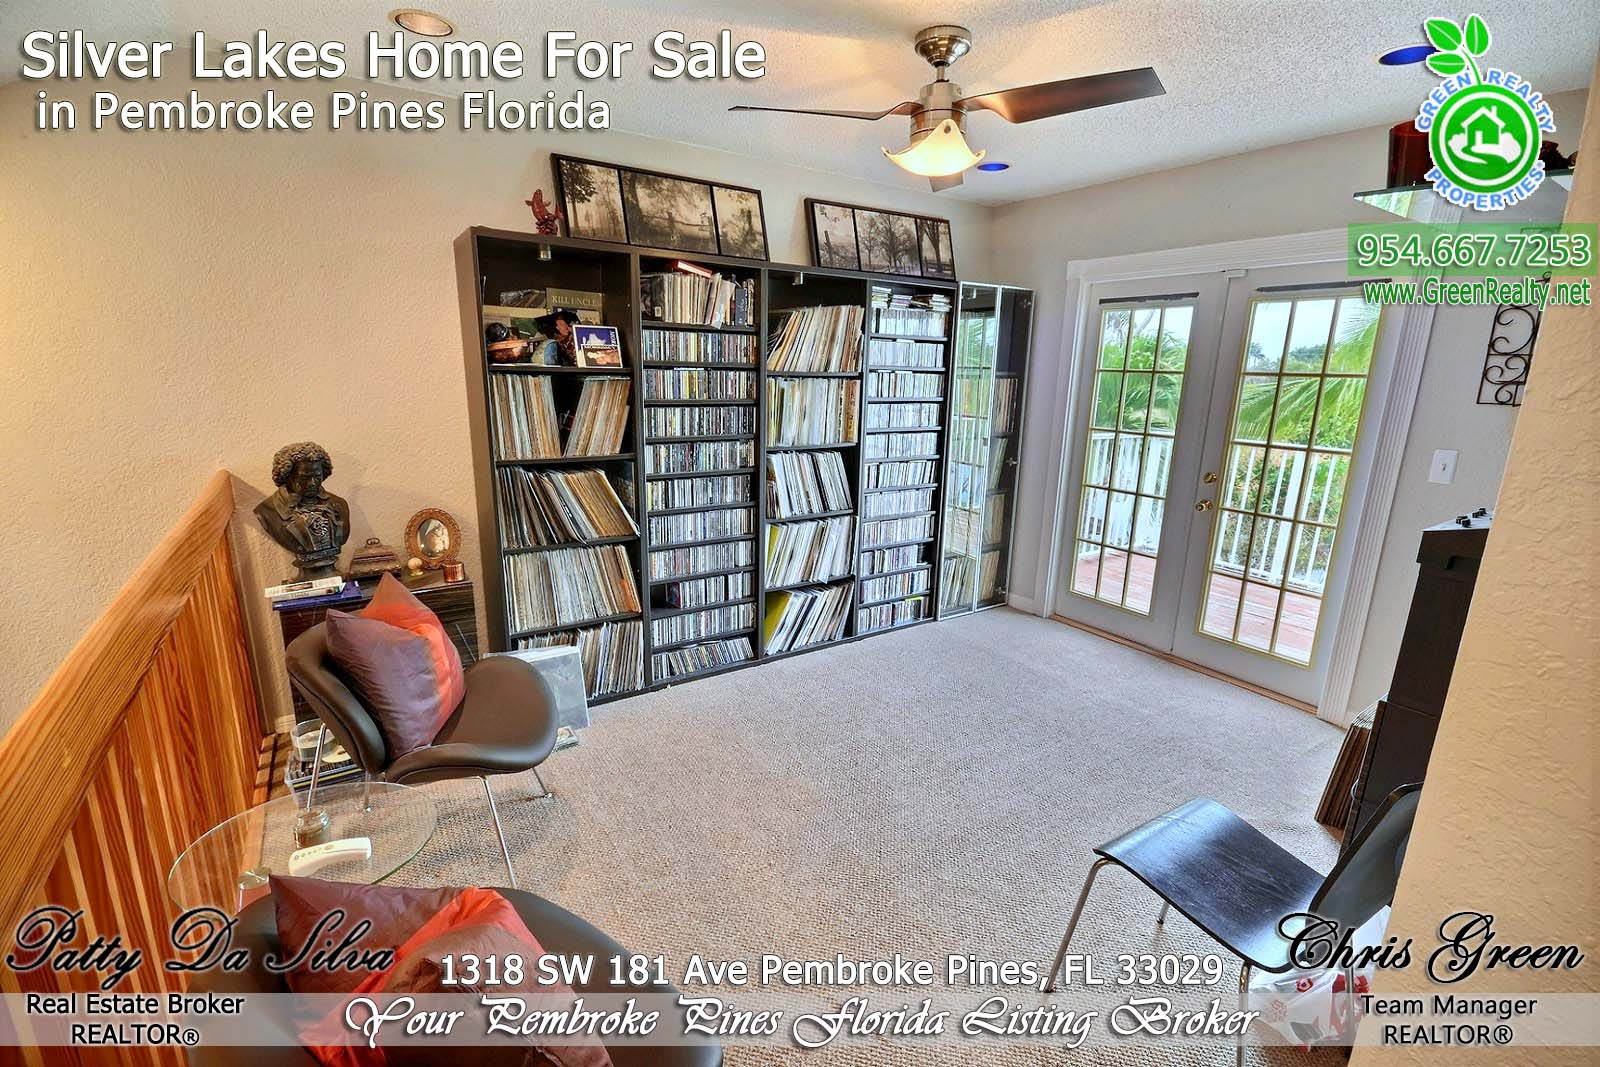 21 Homes For Sale in Silver Lakes (5)